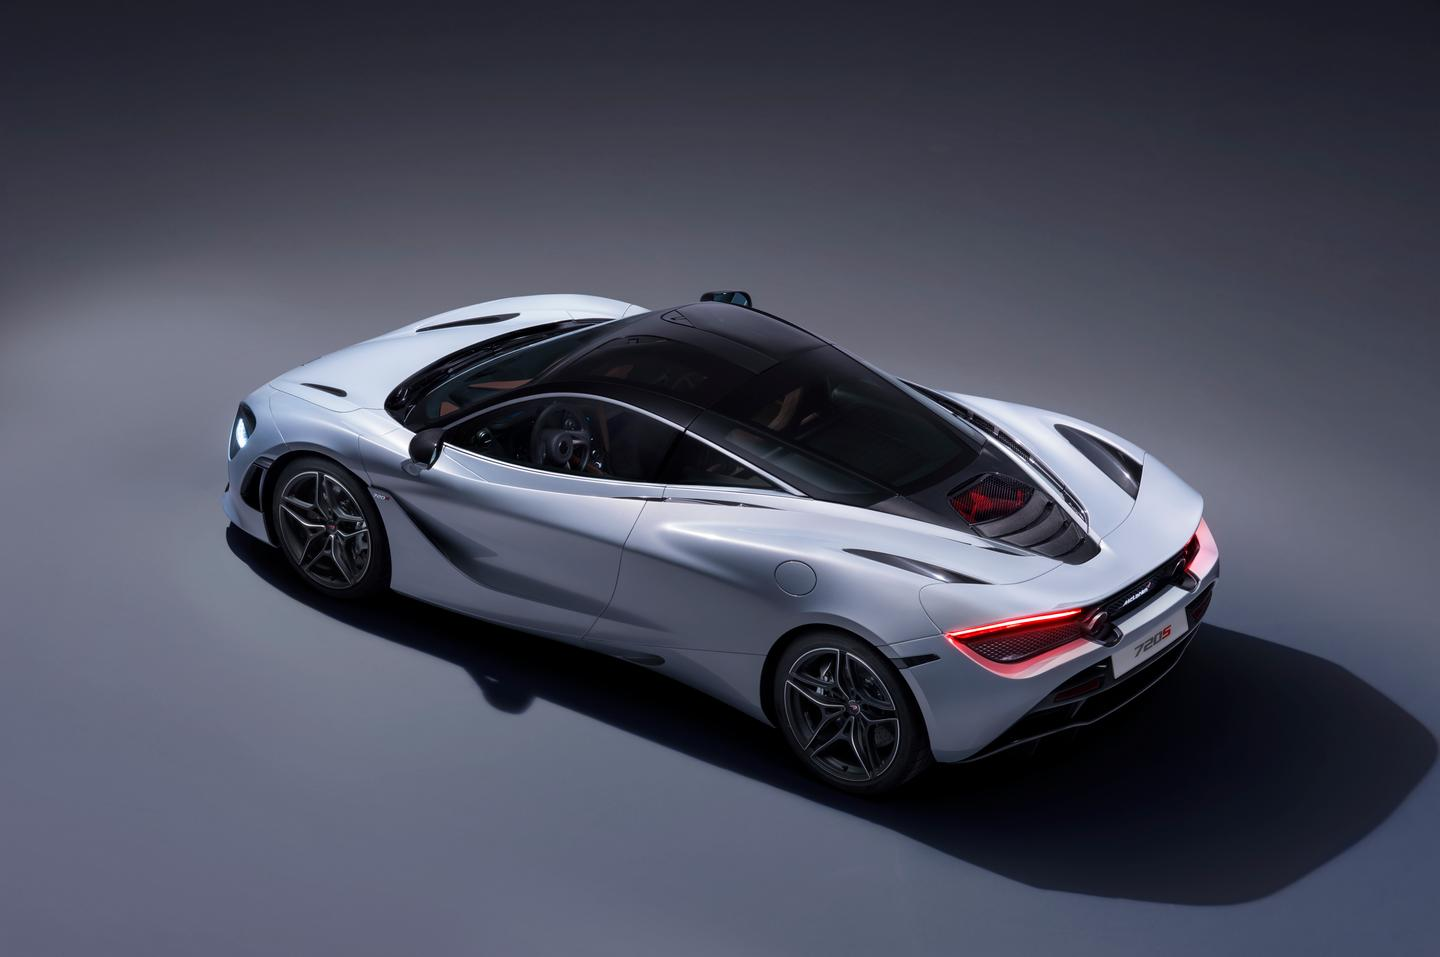 The McLaren 720S: one of Frank Stephenson's last designs for the company